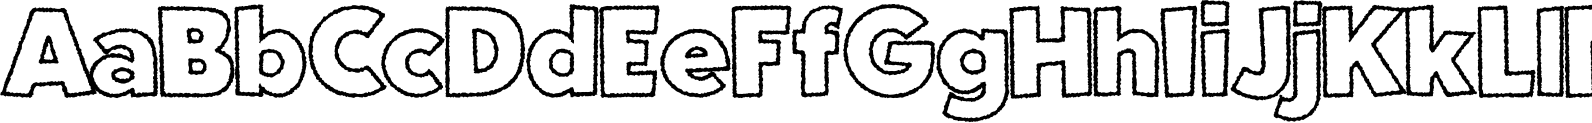 Fright Night Rough Outline Font